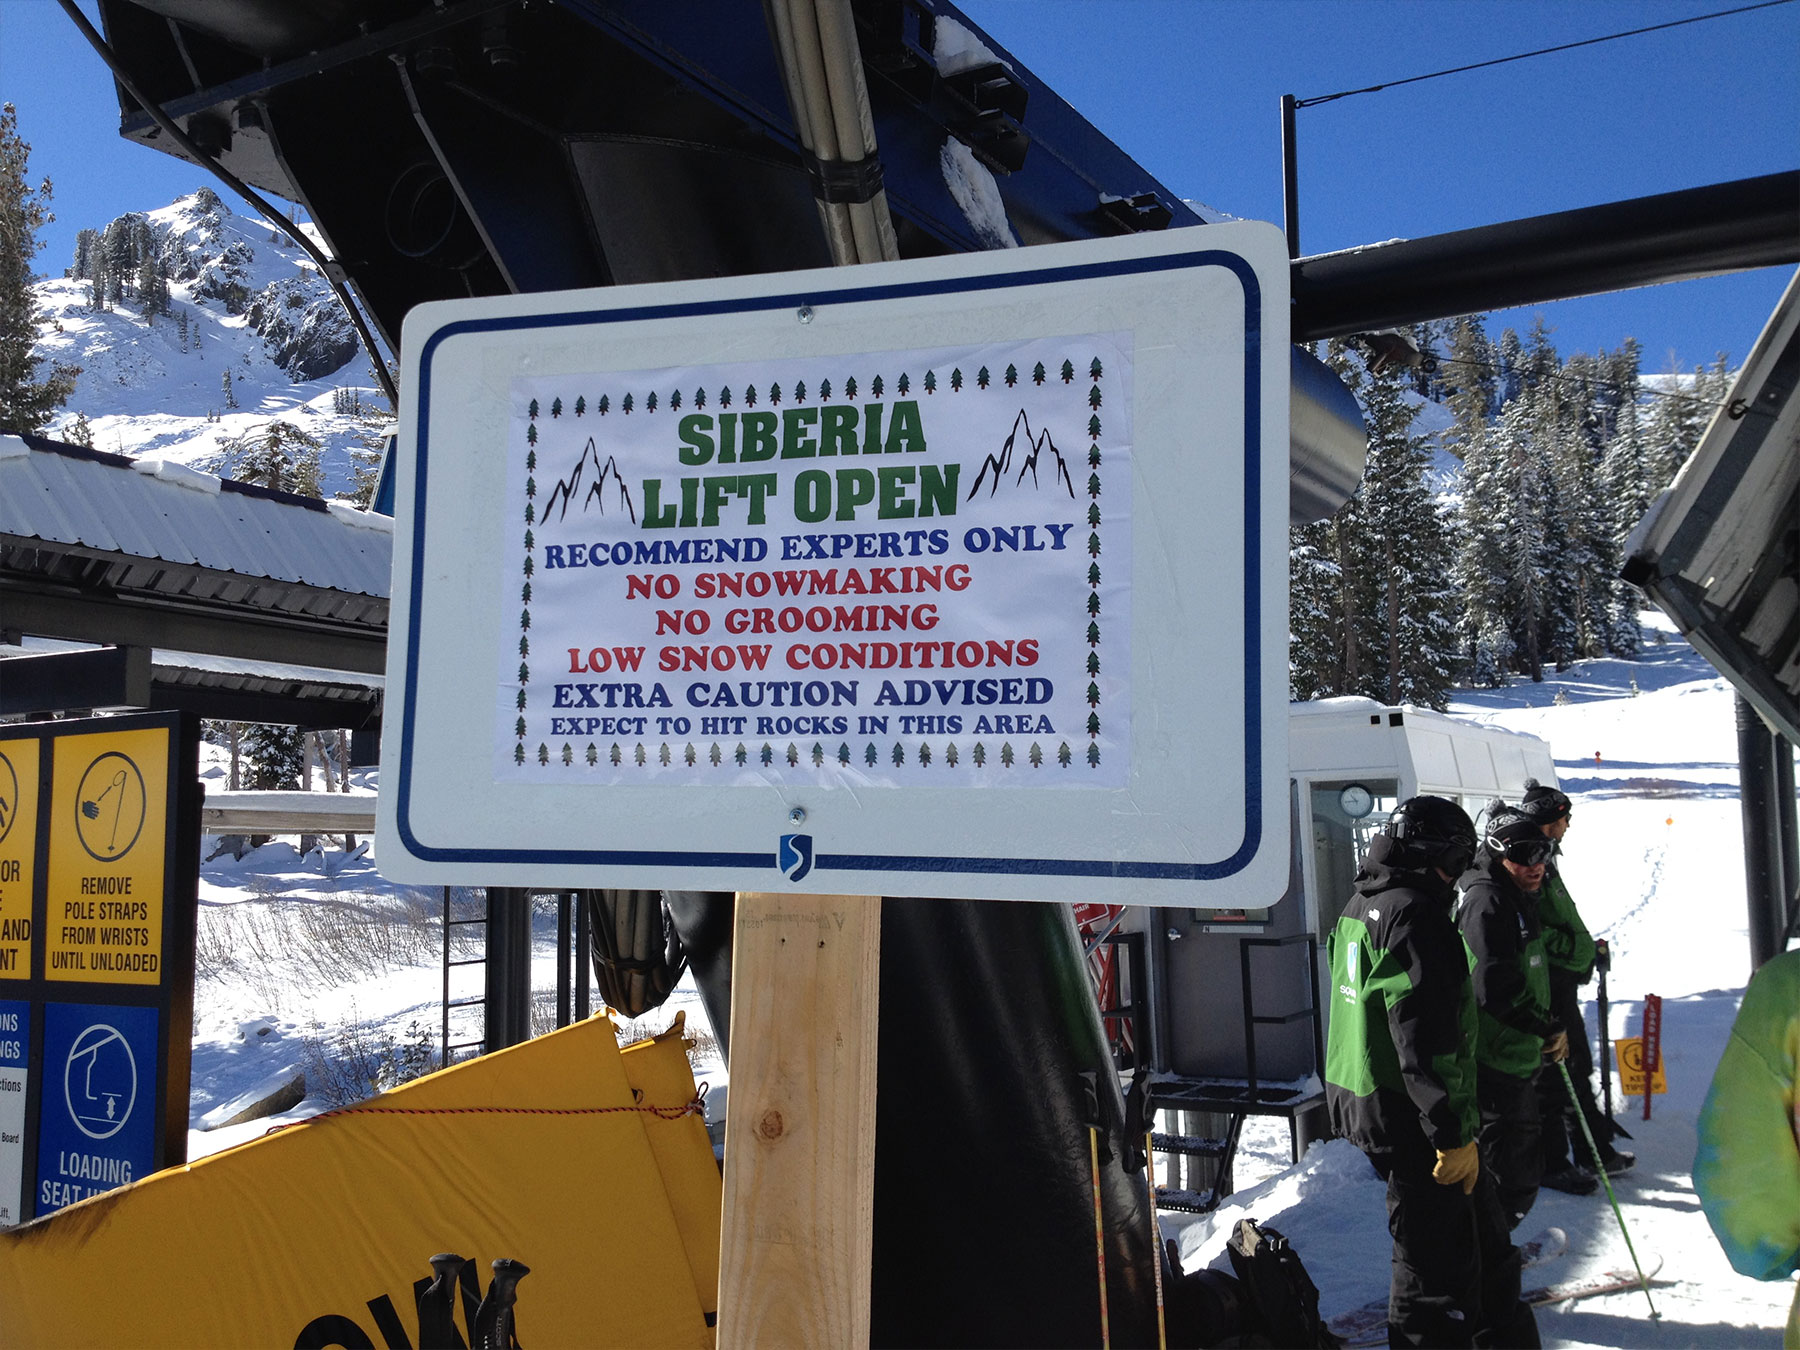 Squaw Valley on February 1st